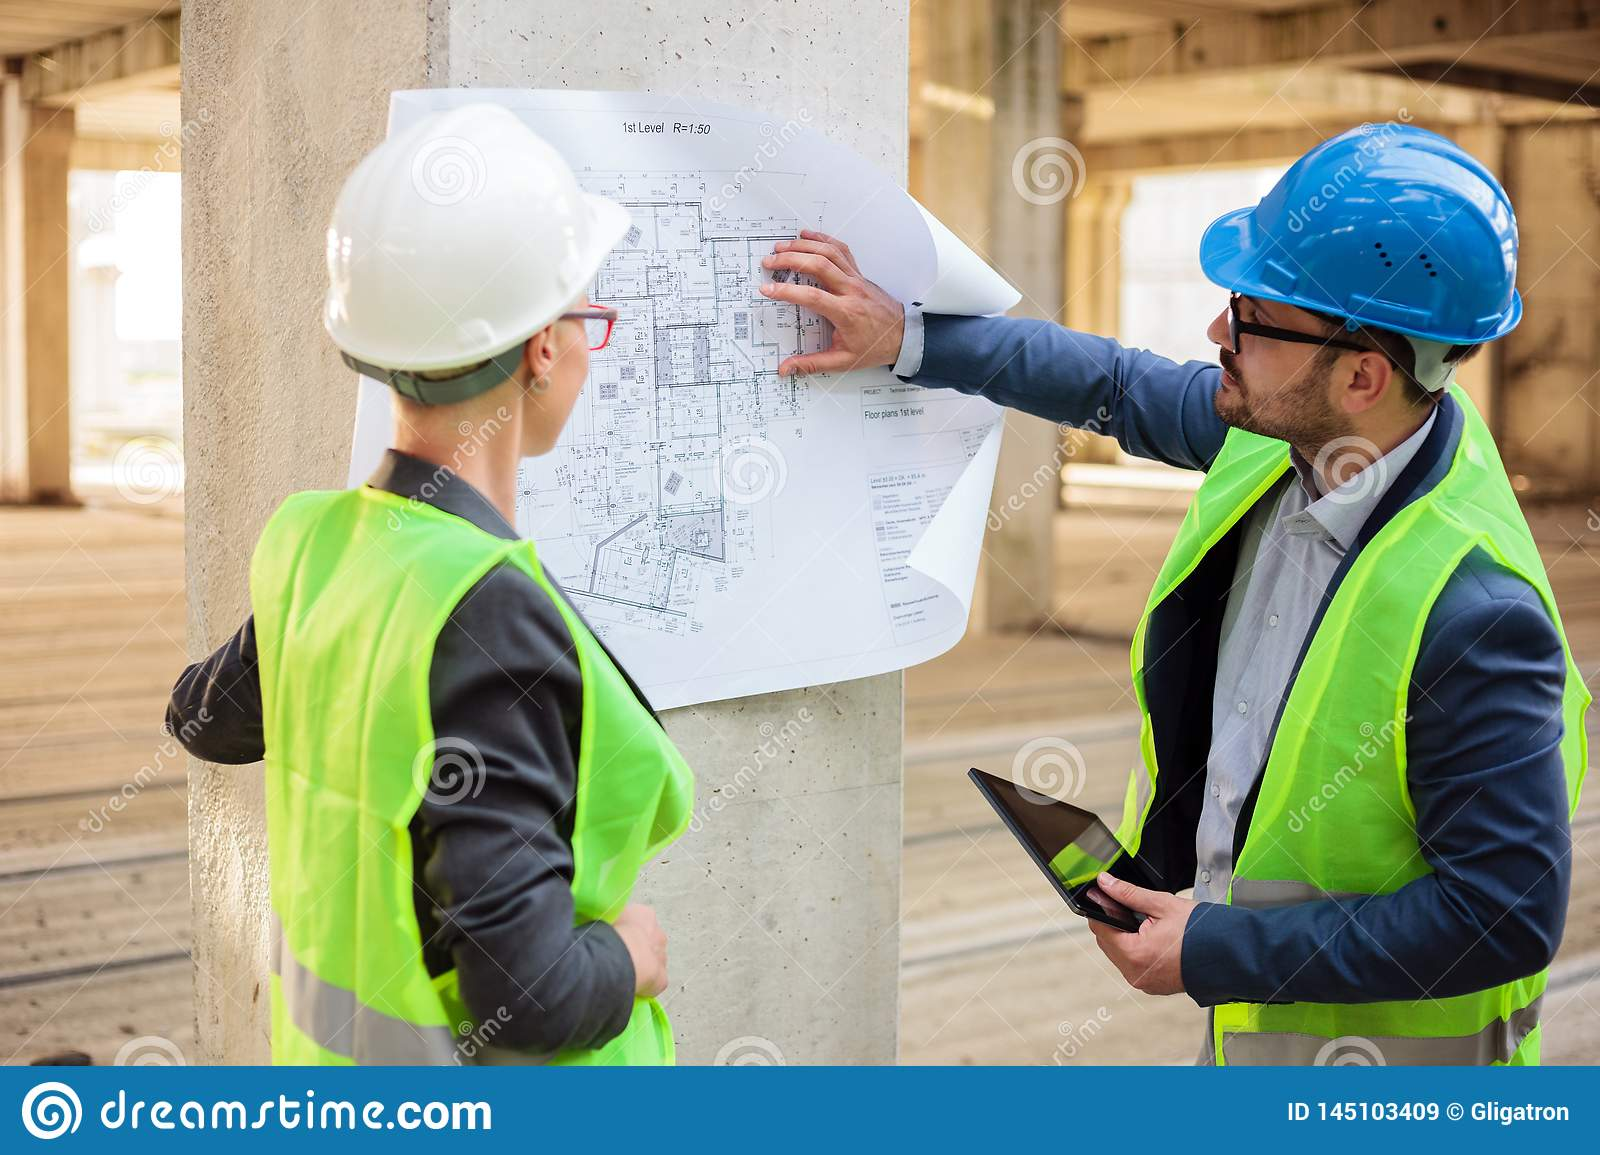 Two successful young architects looking at blueprints on a construction site